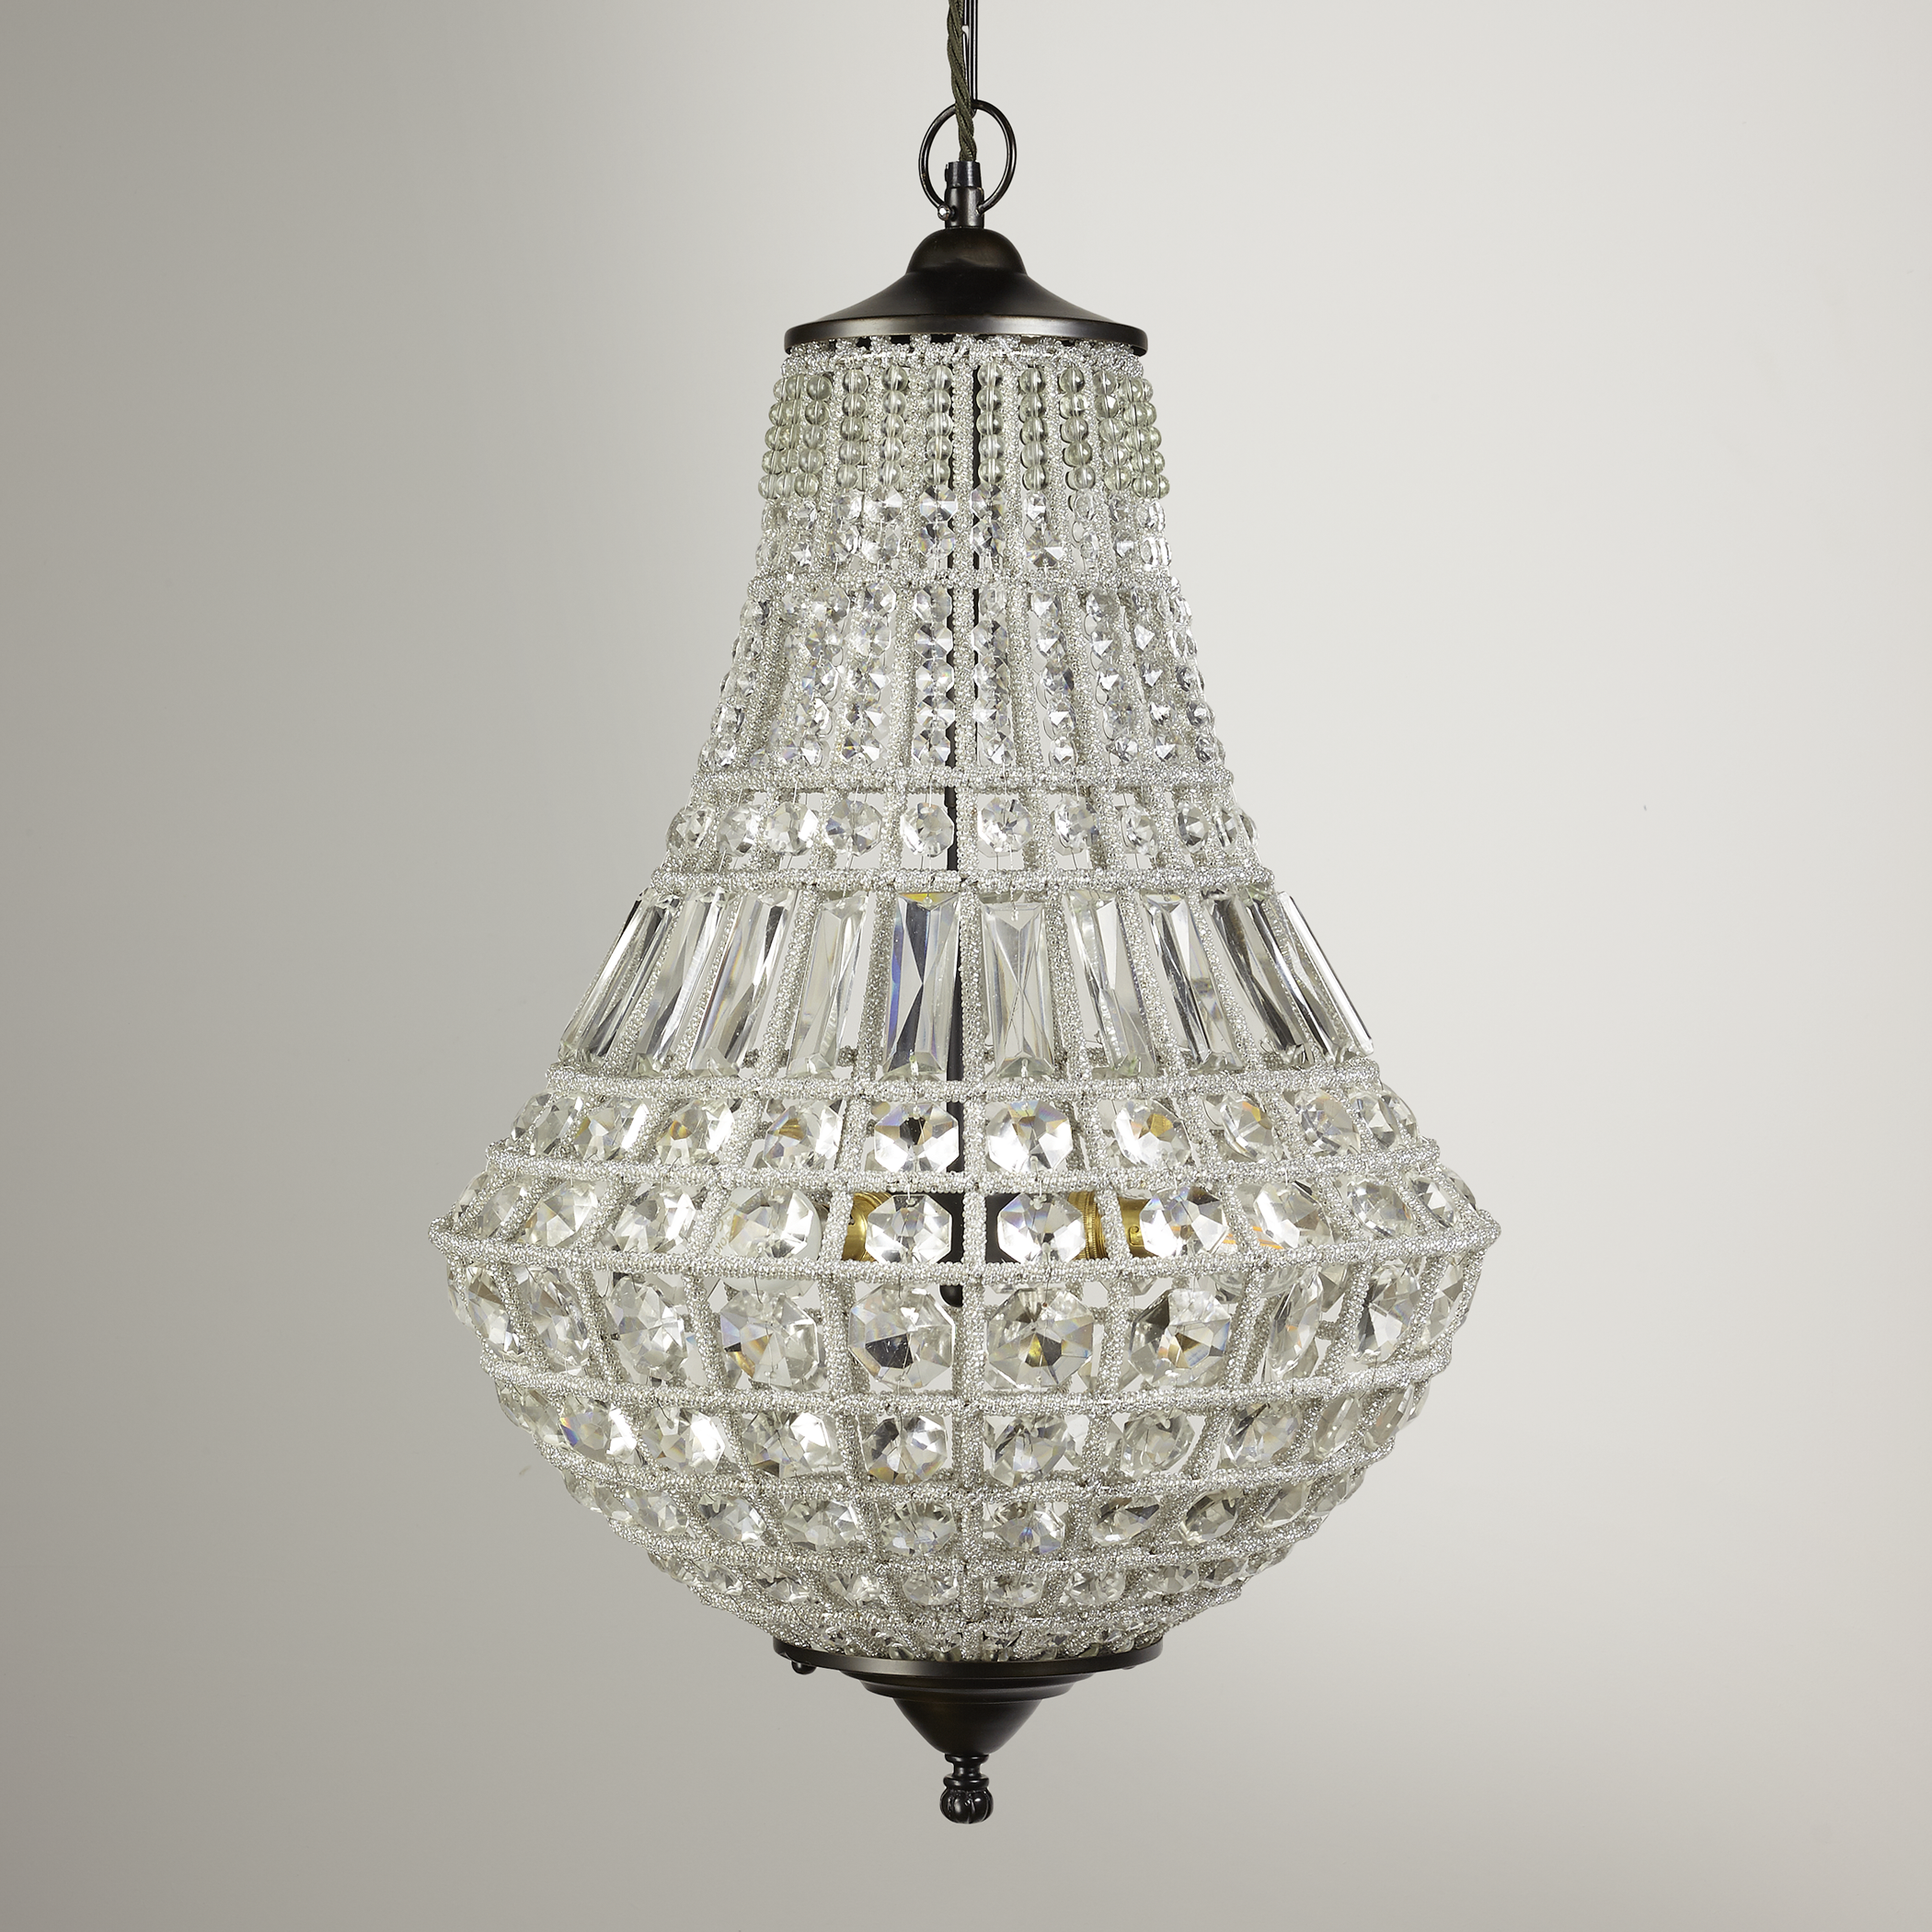 This Is The Classic French Teardrop Shaped Beaded Chandelier Glass Ball Pendant Lighting Crystal Chandelier Beaded Chandelier